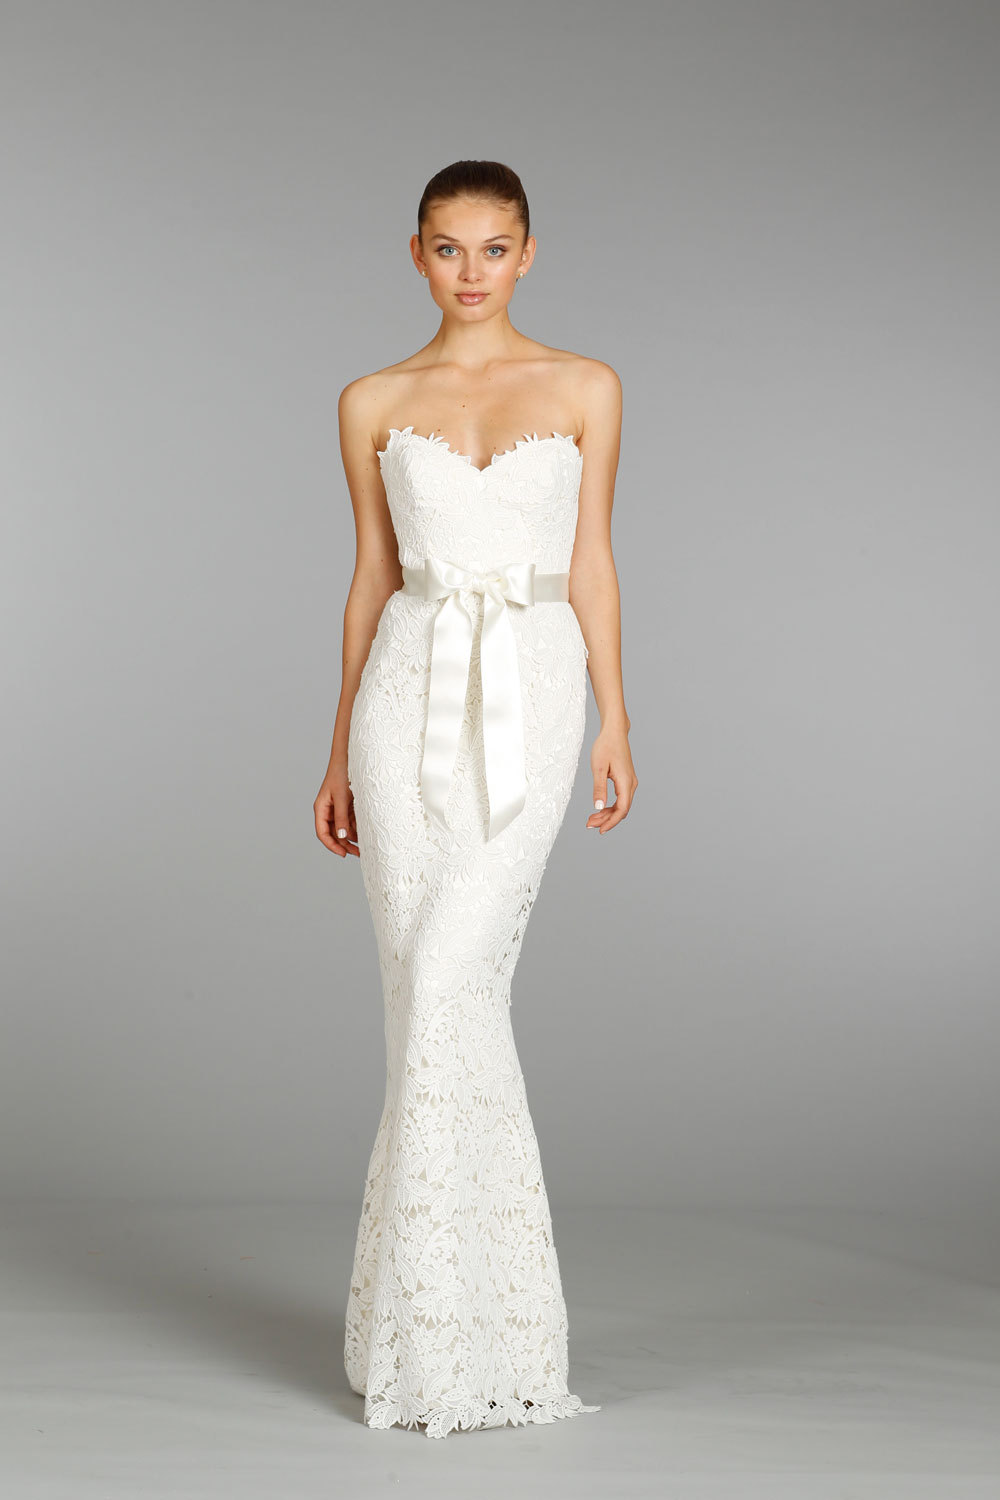 Lazaro-wedding-dress-fall-2013-bridal-3357-2.full